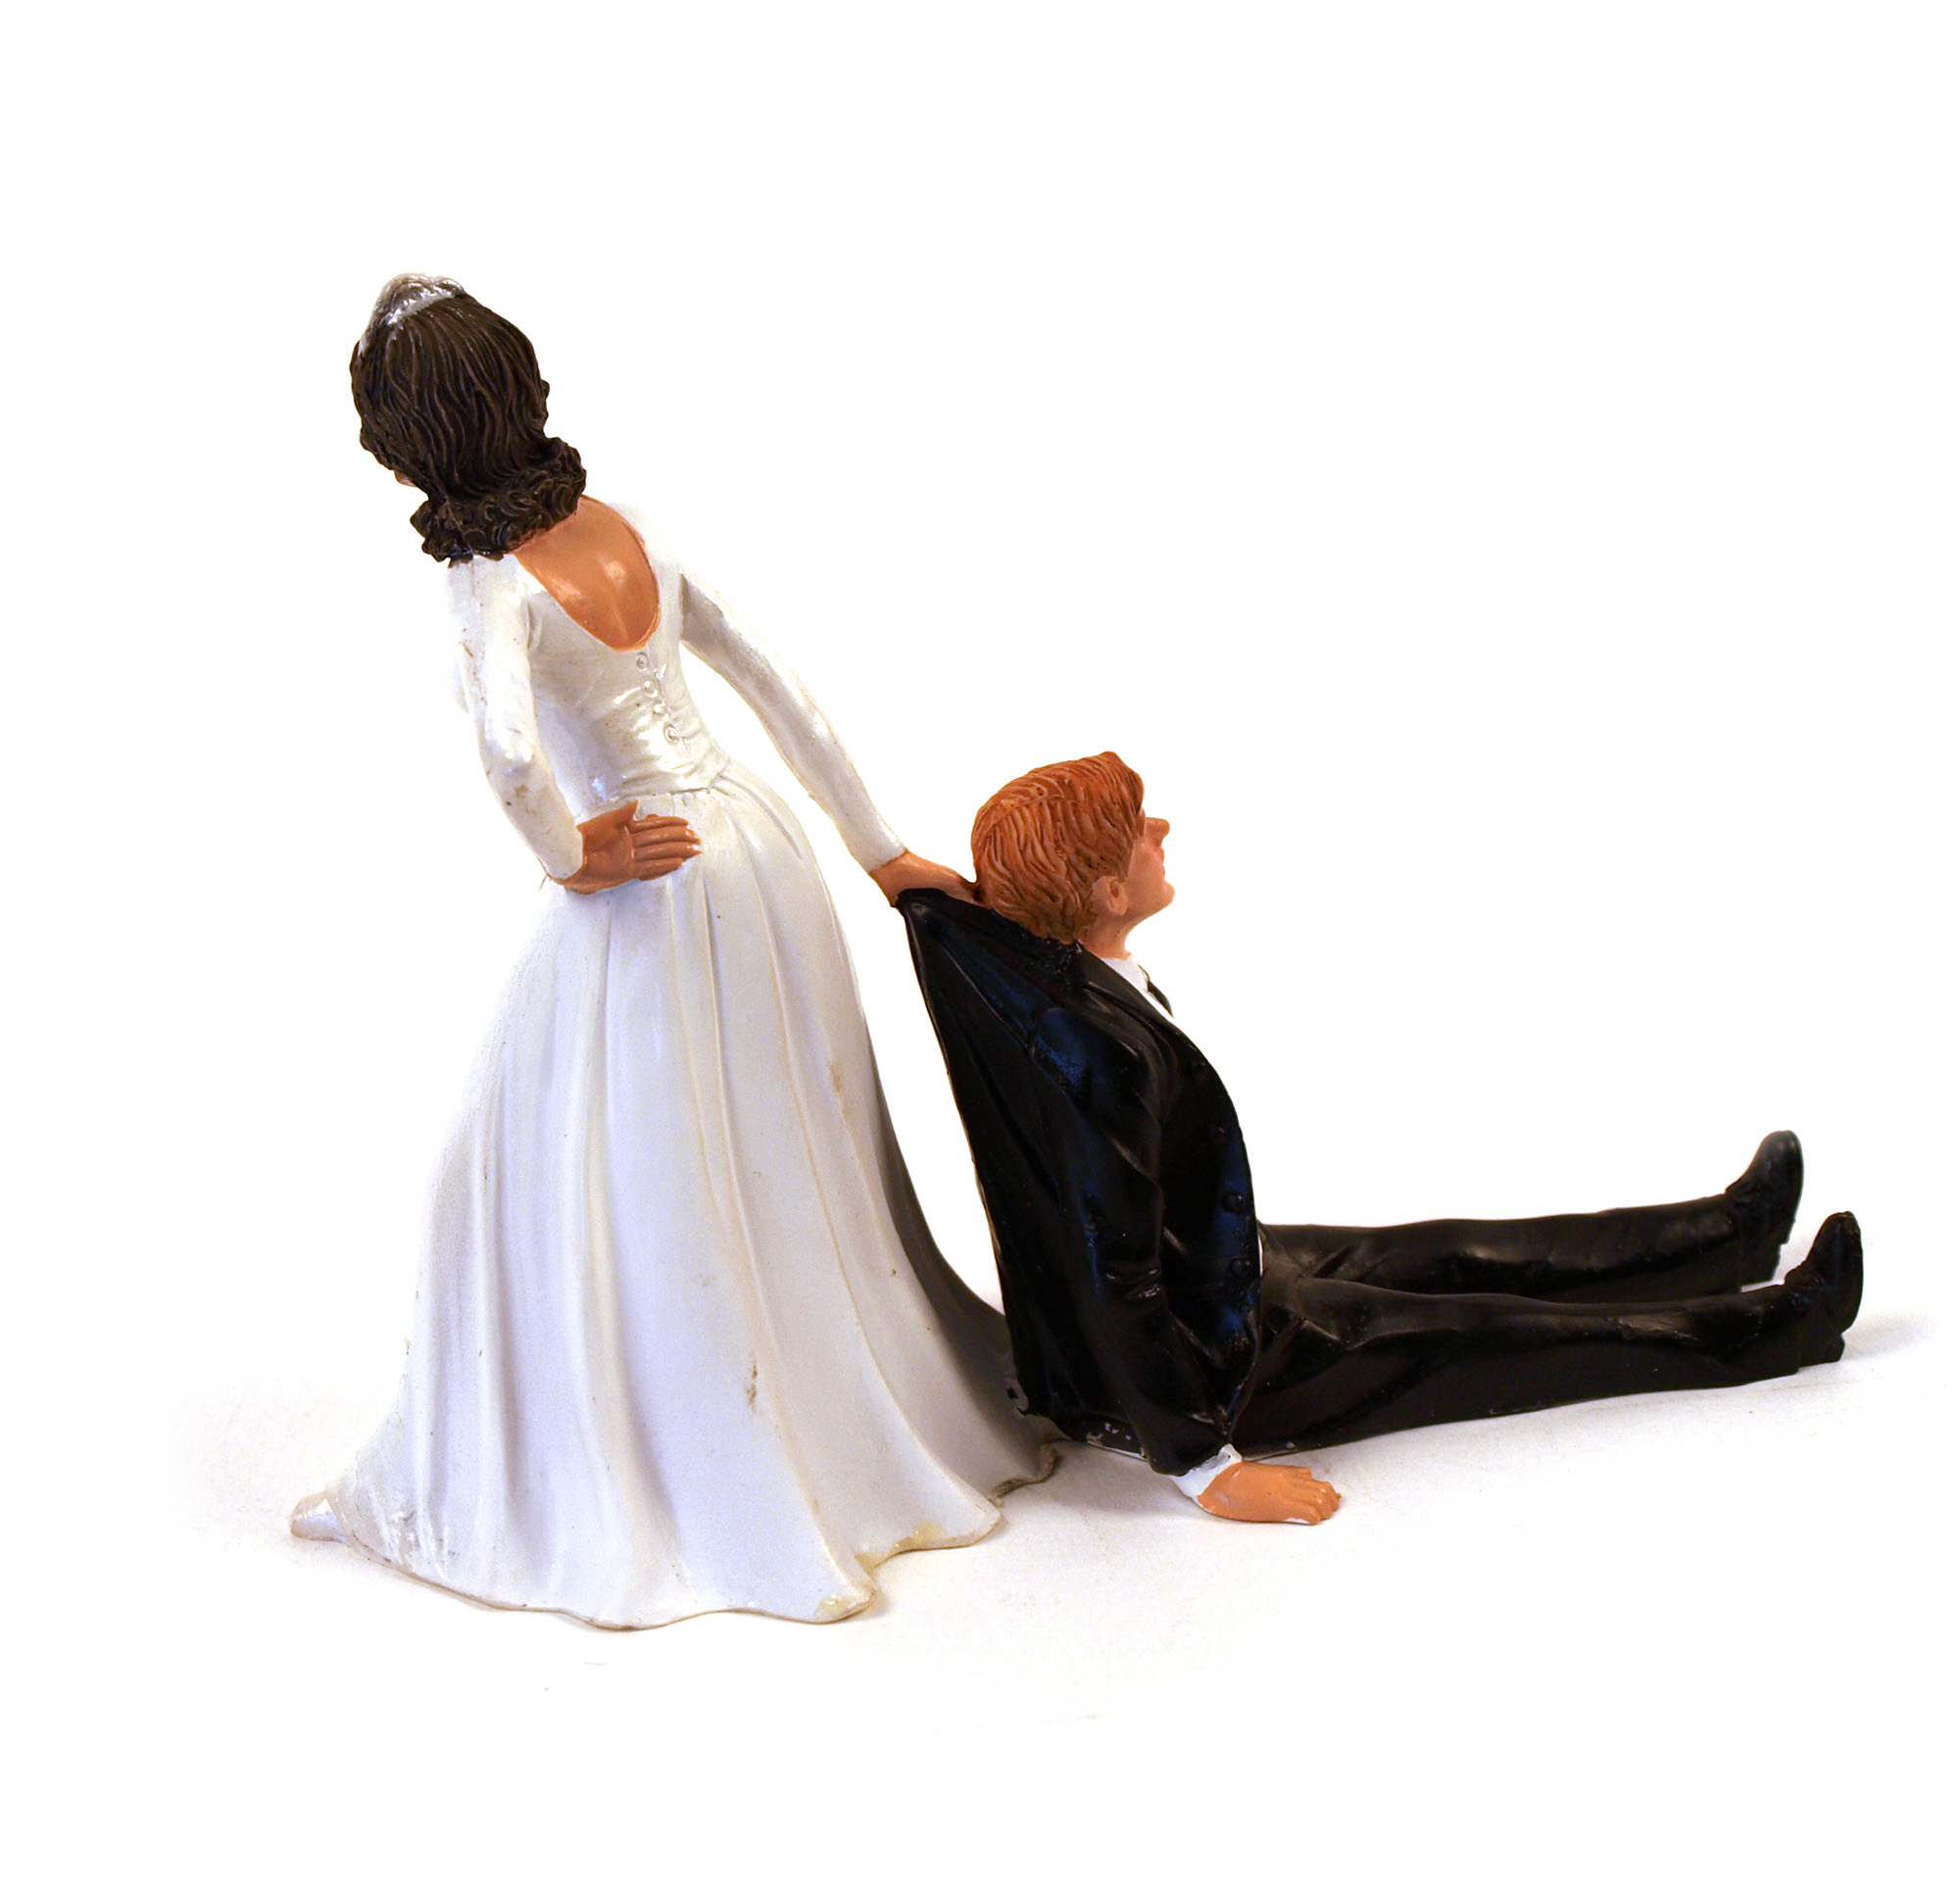 Bride Wedding Cake Topper: RELUCTANT GROOM CAKE TOPPER WEDDING BRIDE NEW FUNNY BRIDAL